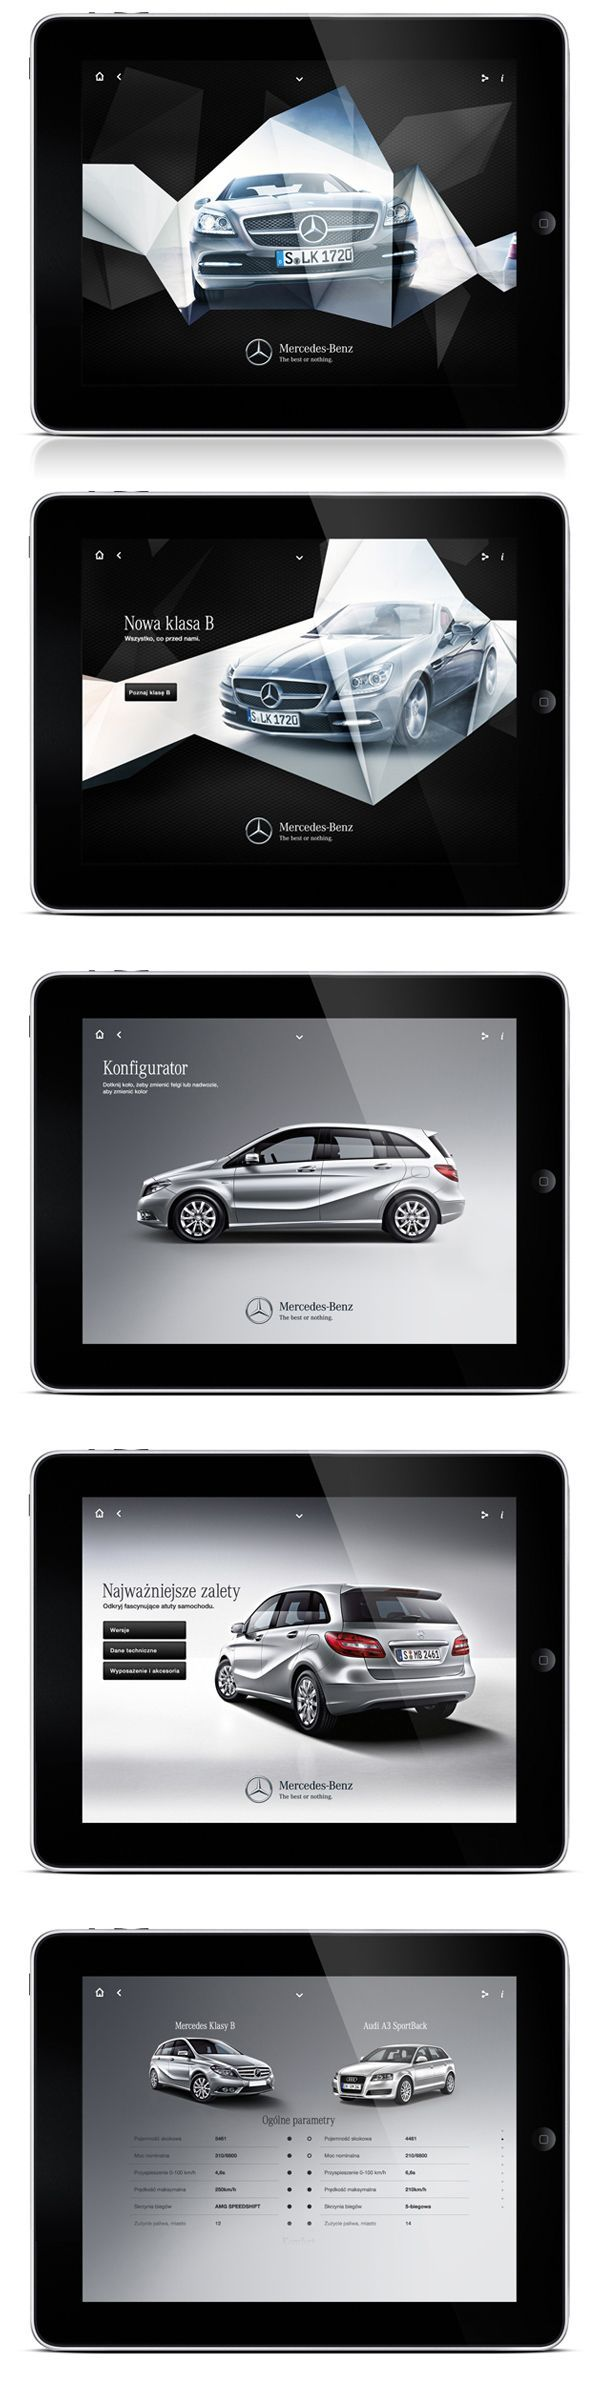 Mercedes iPad app ui design by maciej mach http://www.behance.net/maciejmach